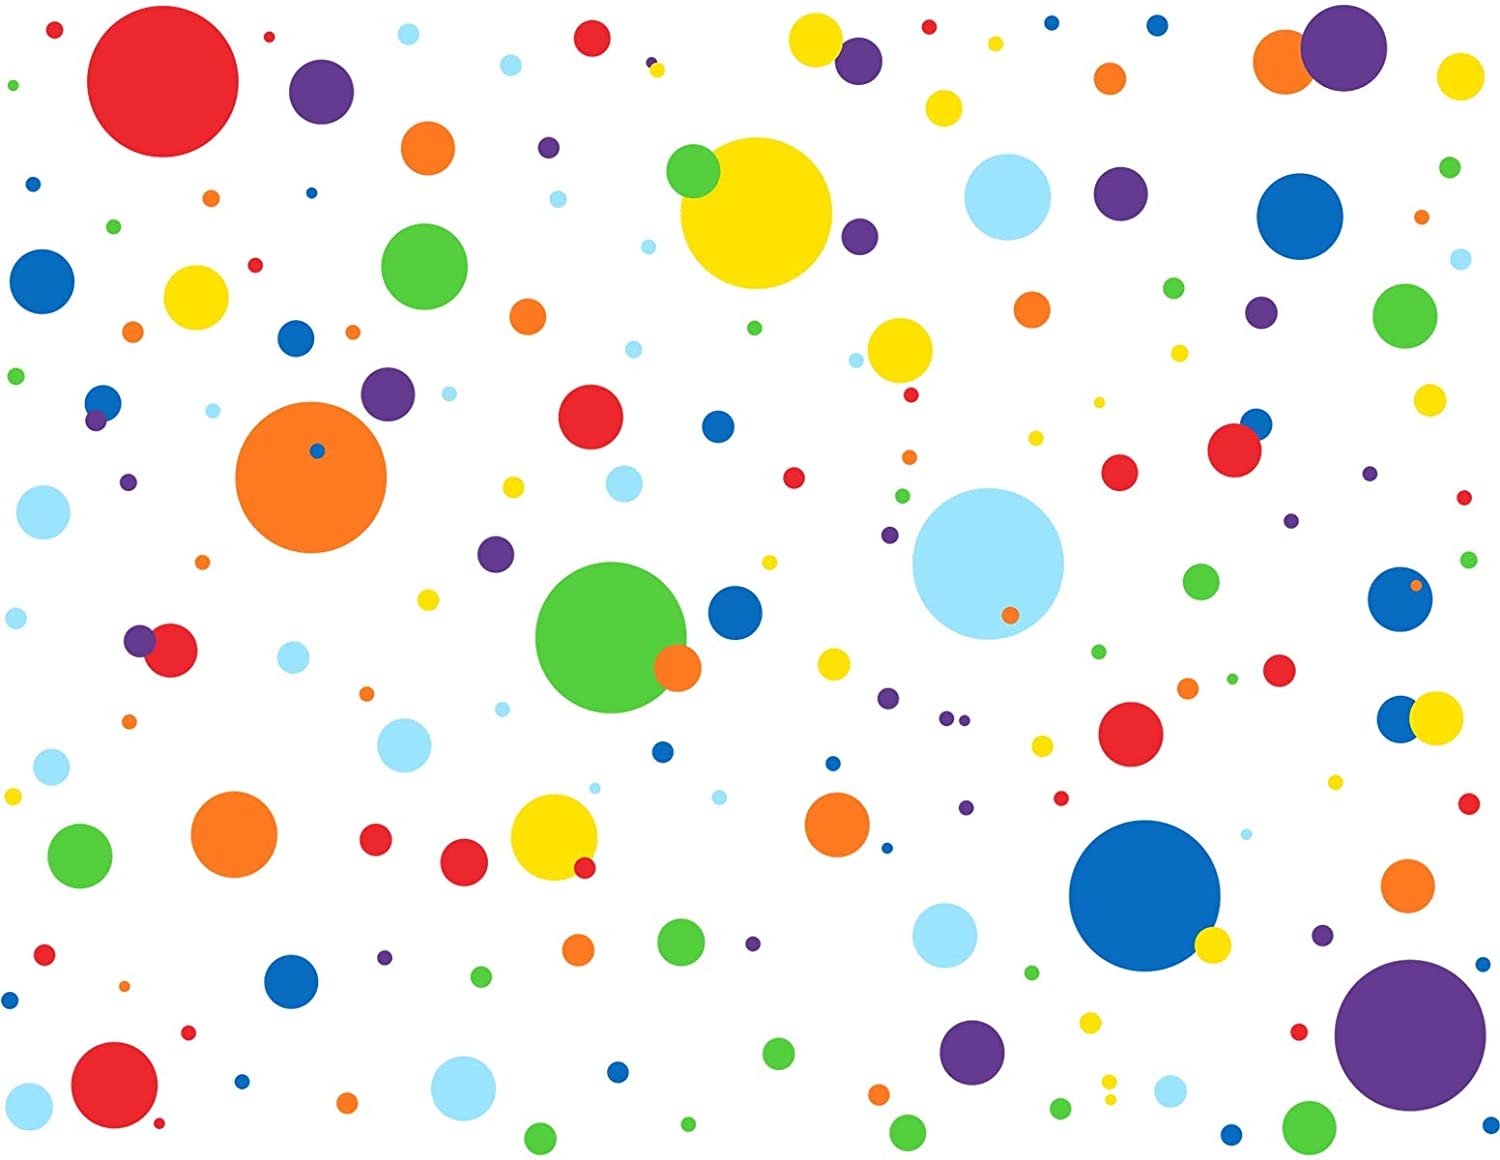 Colorful Dots Wallpaper (66 Wallpapers)